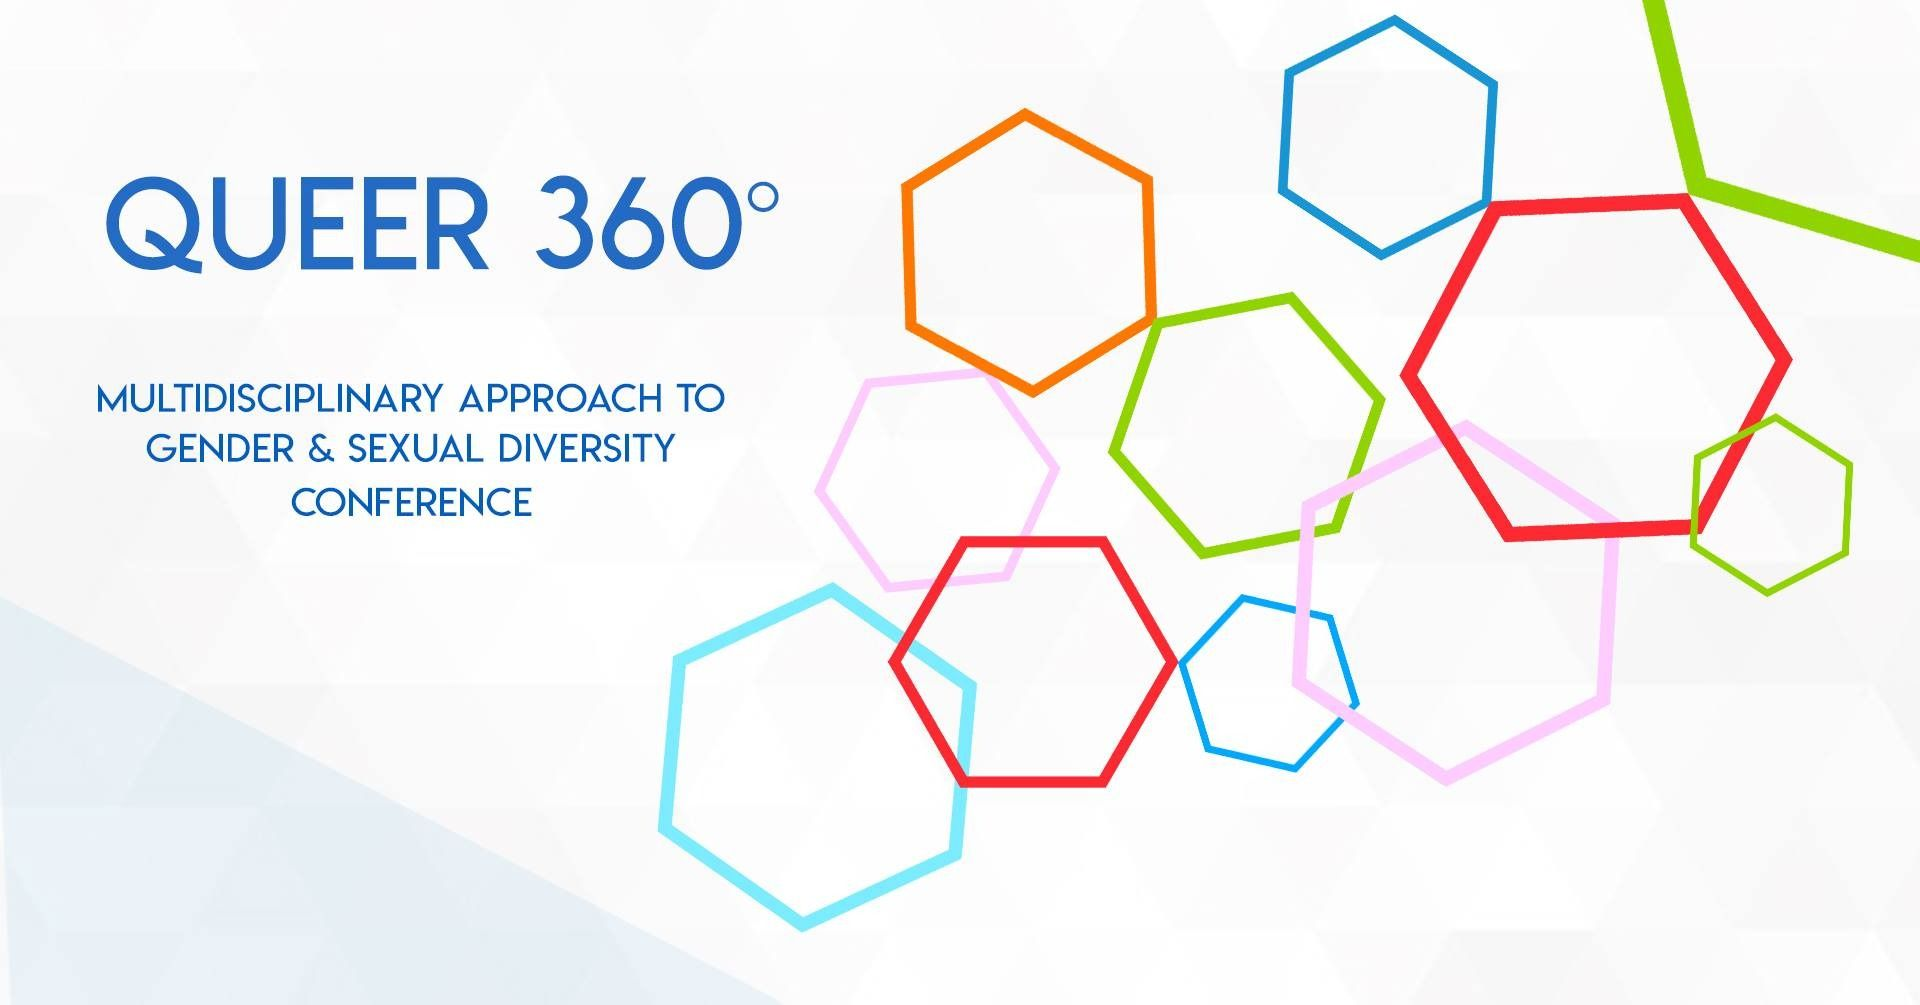 Queer 360 conference poster